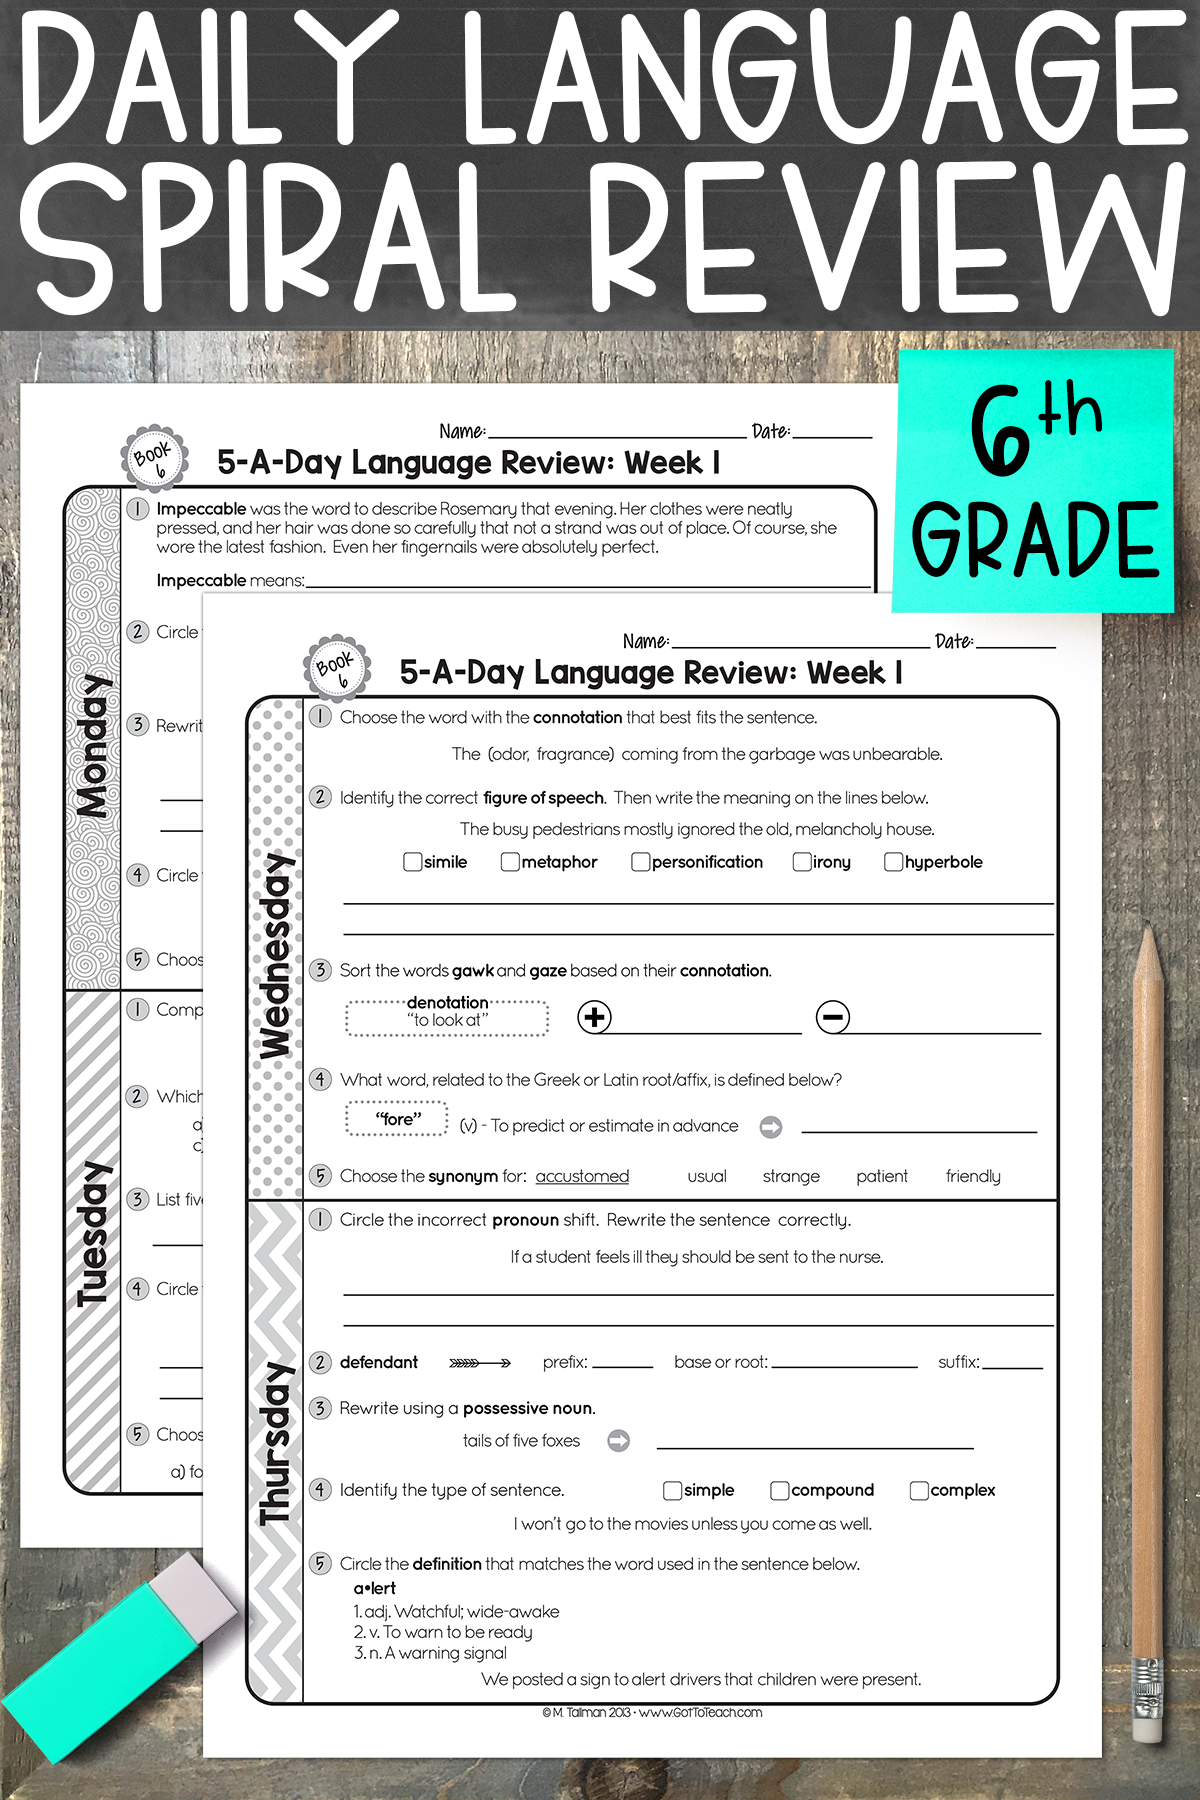 FREE 6th Grade Daily Language Spiral Review • Teacher Thrive   Teaching 6th  grade [ 1800 x 1200 Pixel ]